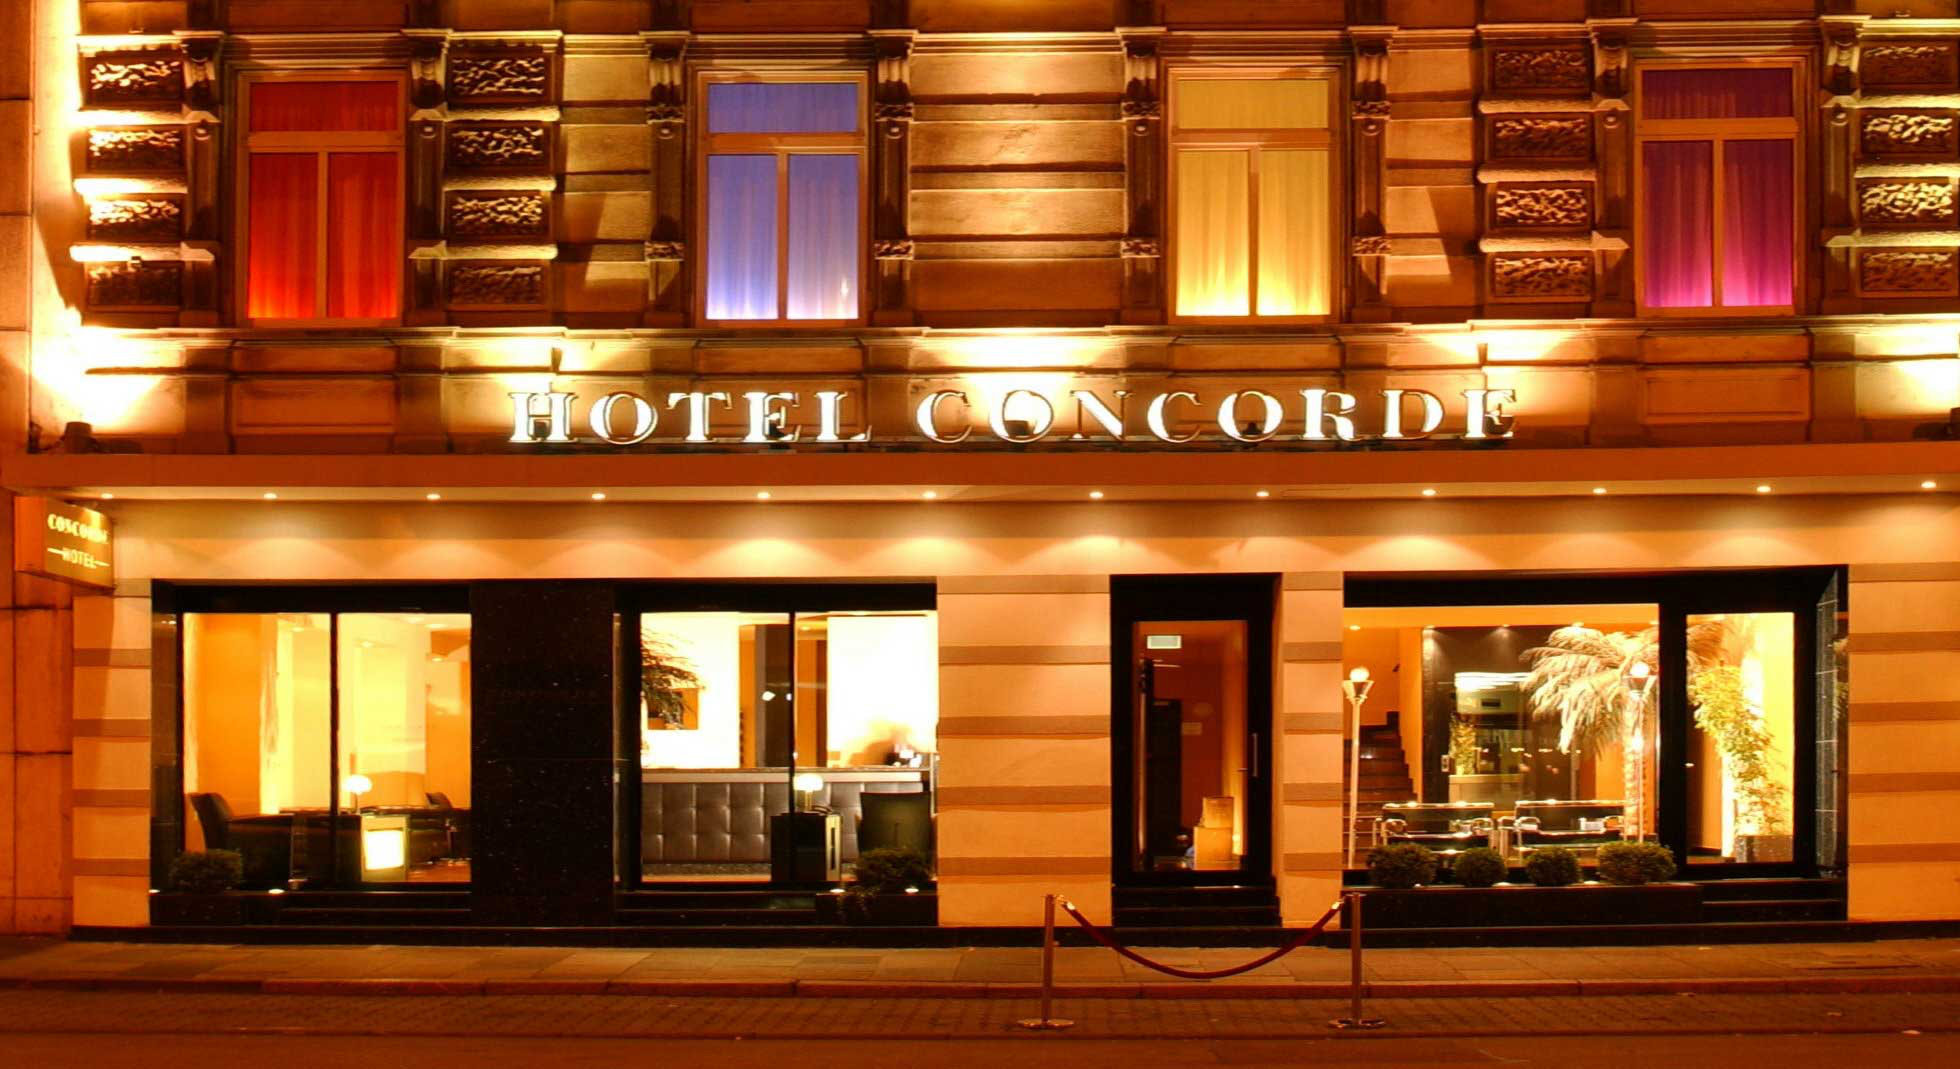 Hotel Concorde Hotel Concorde In Frankfurt Book A Design Hotel Near The Central